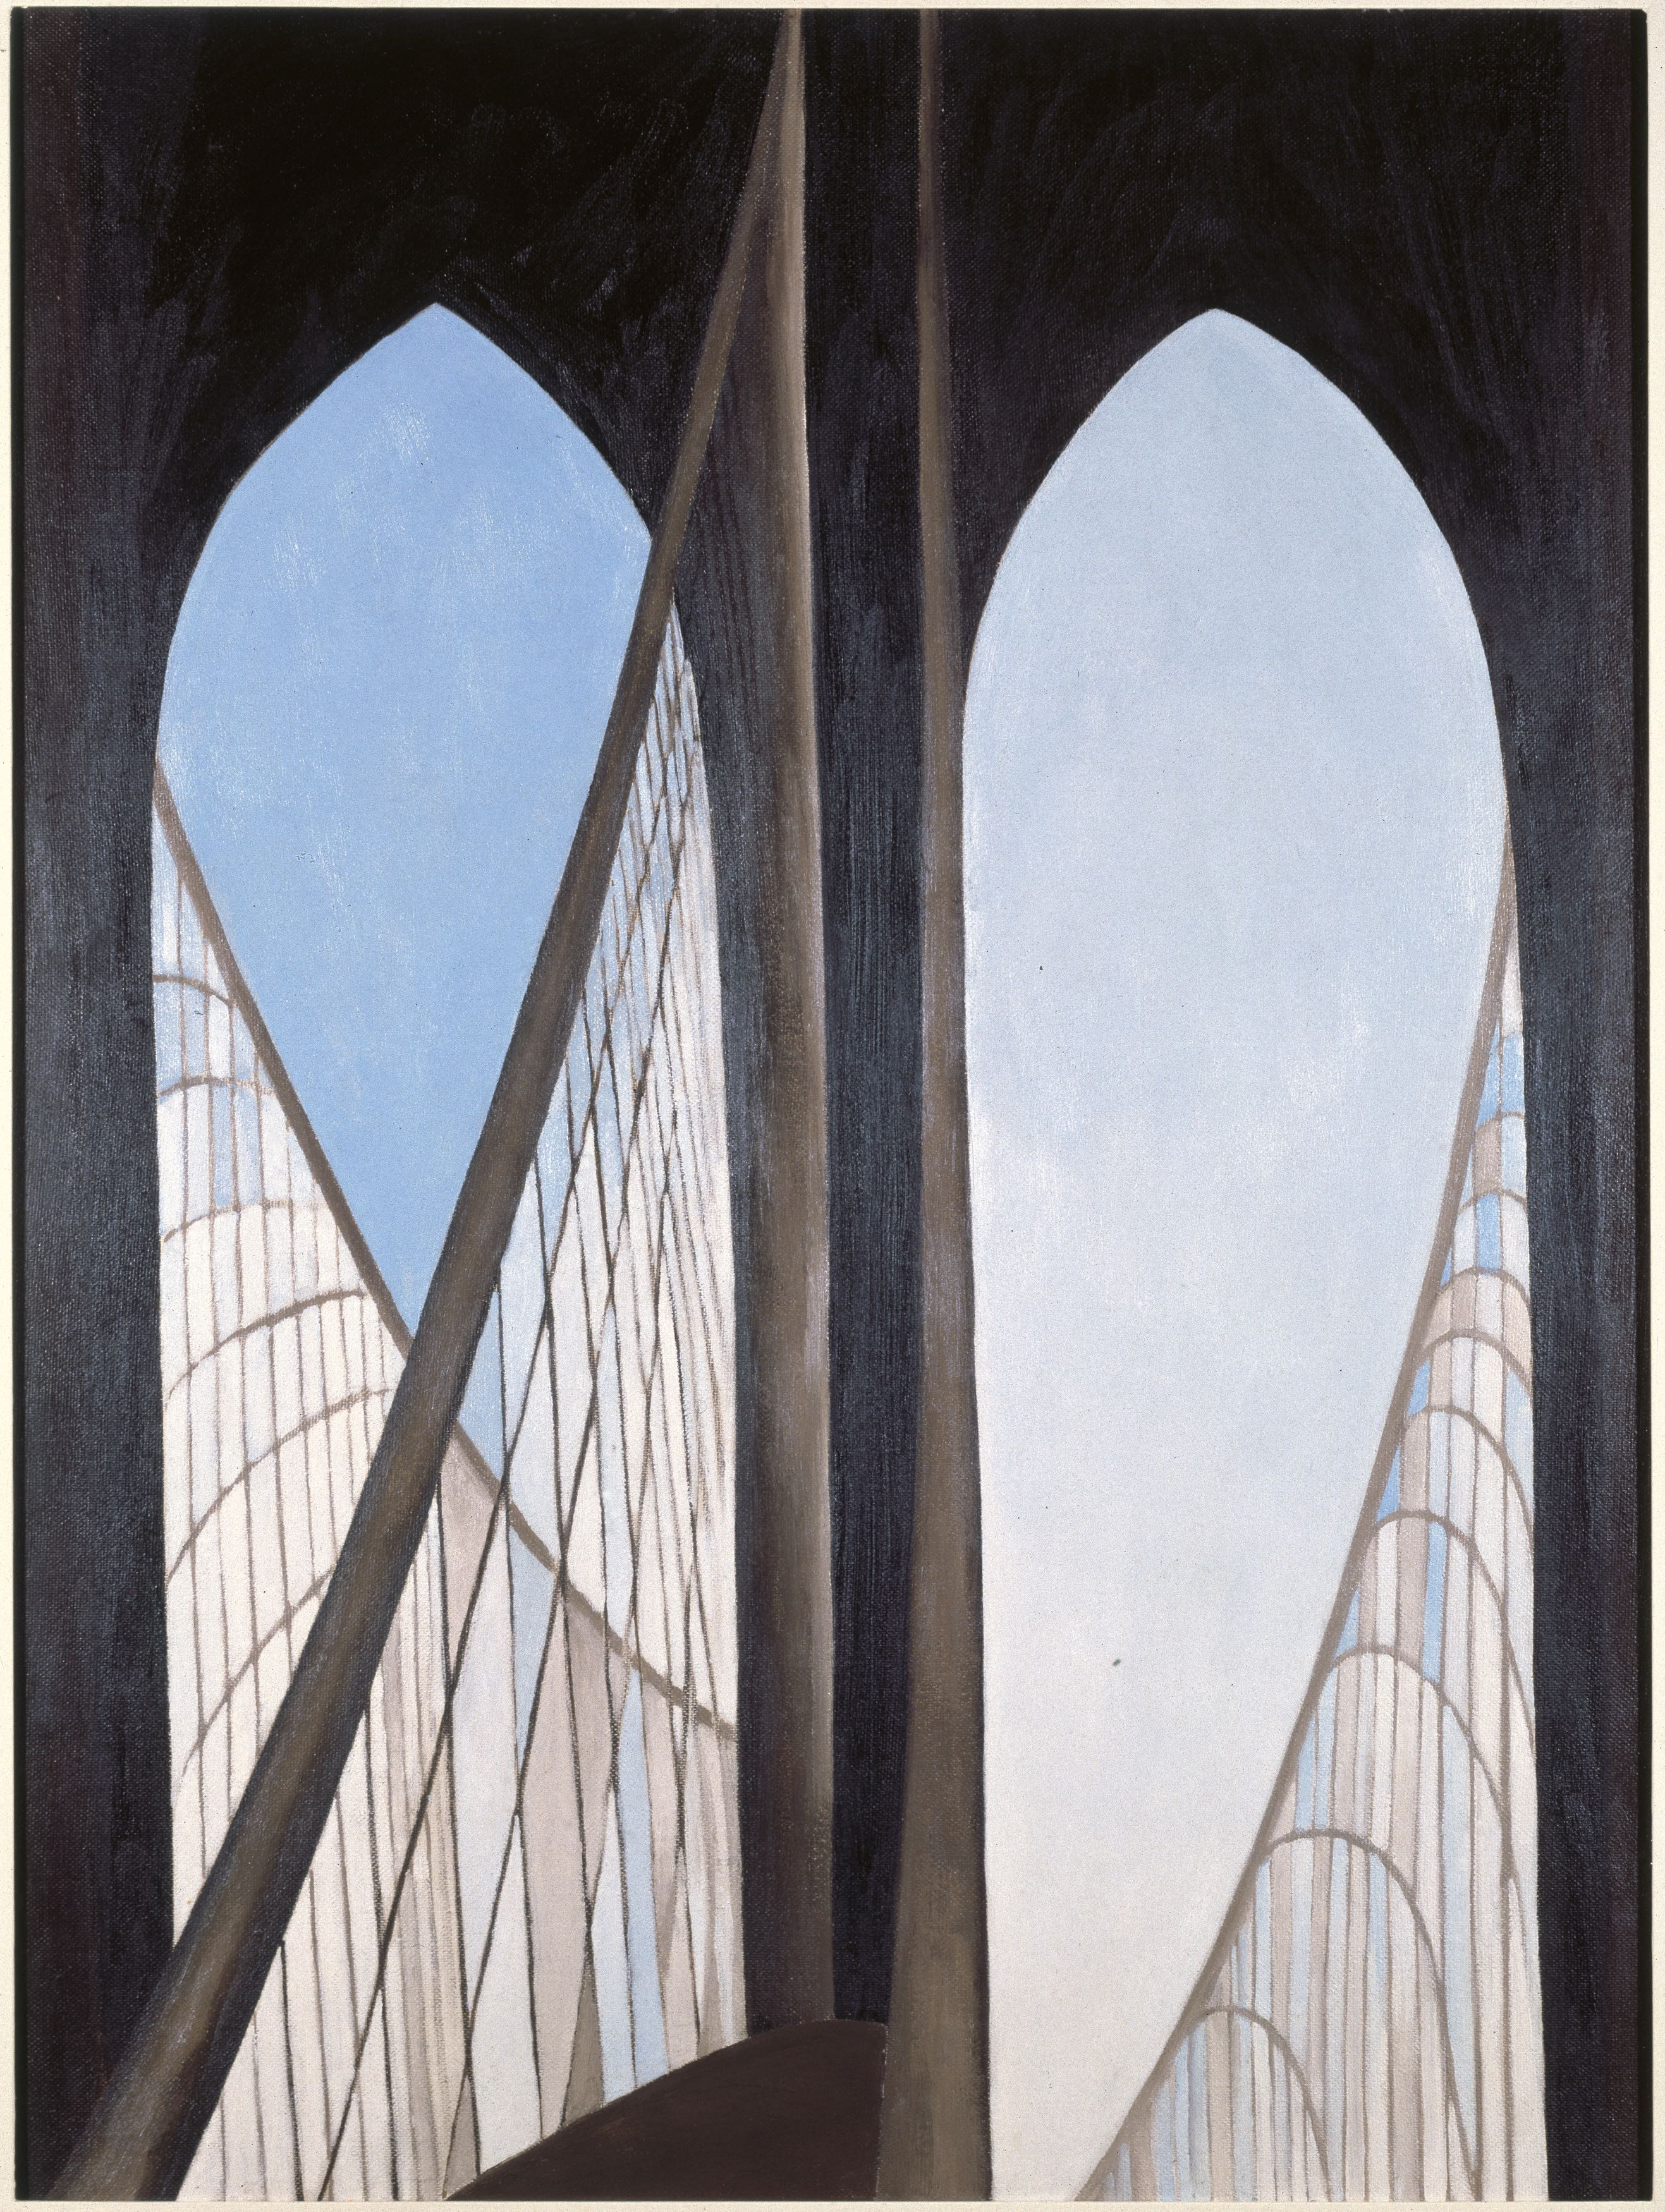 Brooklyn Bridge, 1949. Brooklyn Museum; Bequest of Mary Childs Draper, 77.11. (Photo: Brooklyn Museum)